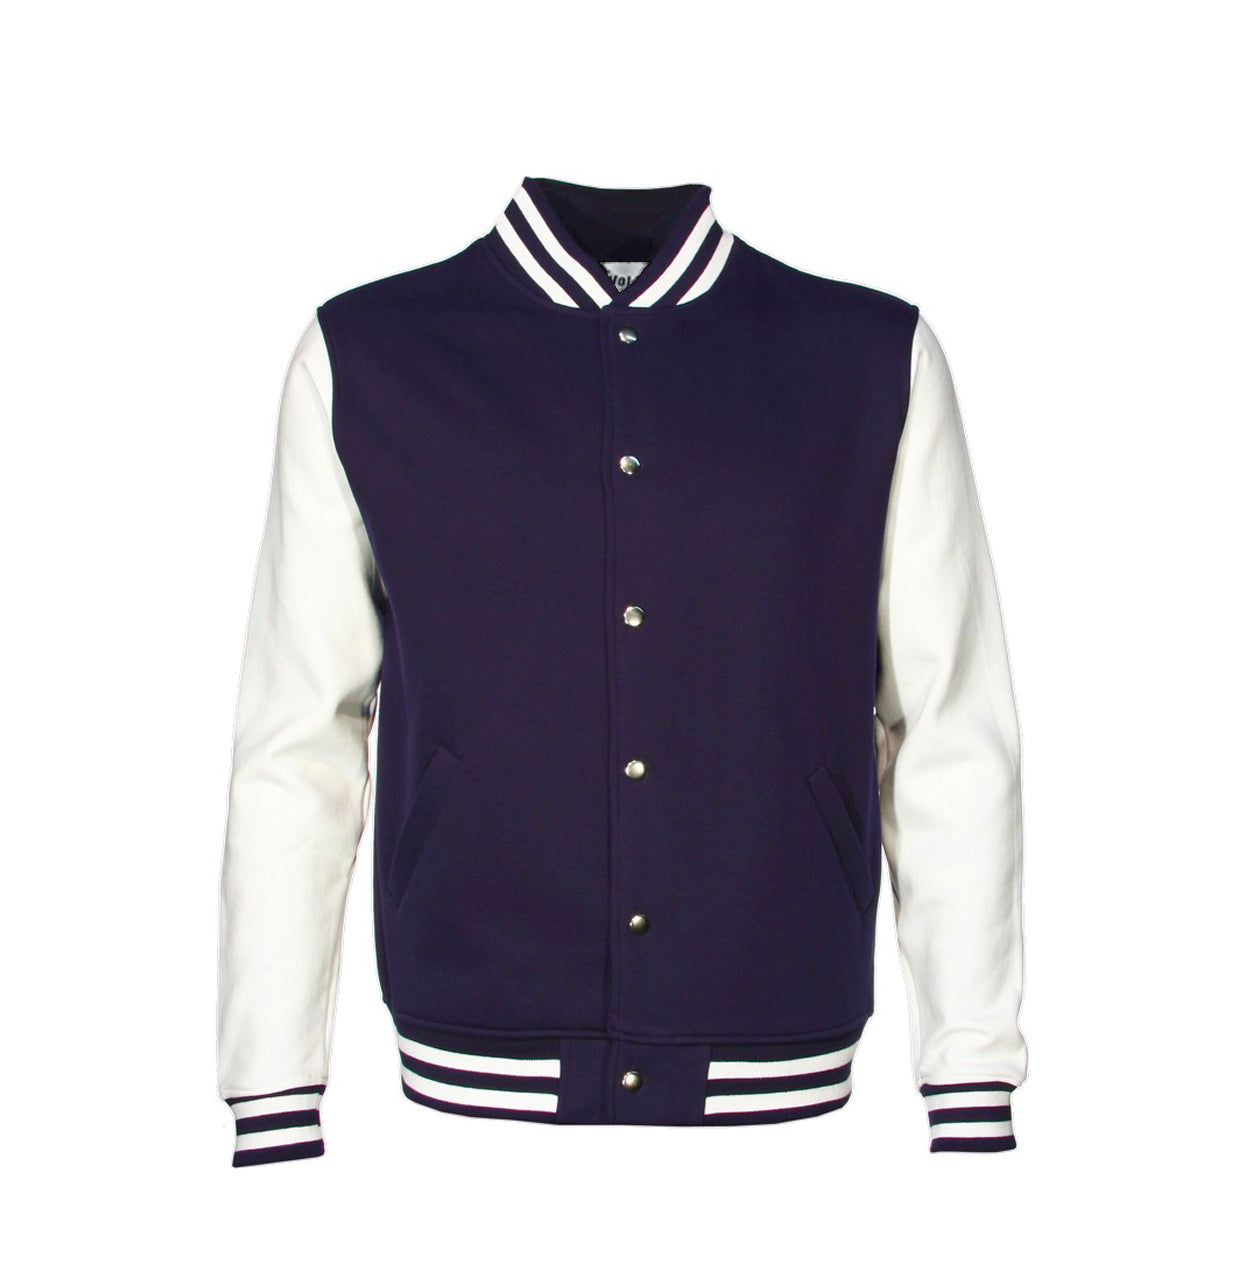 Vol.1 This Is Not Jacket CC Navyish & Whiteish - Unisex